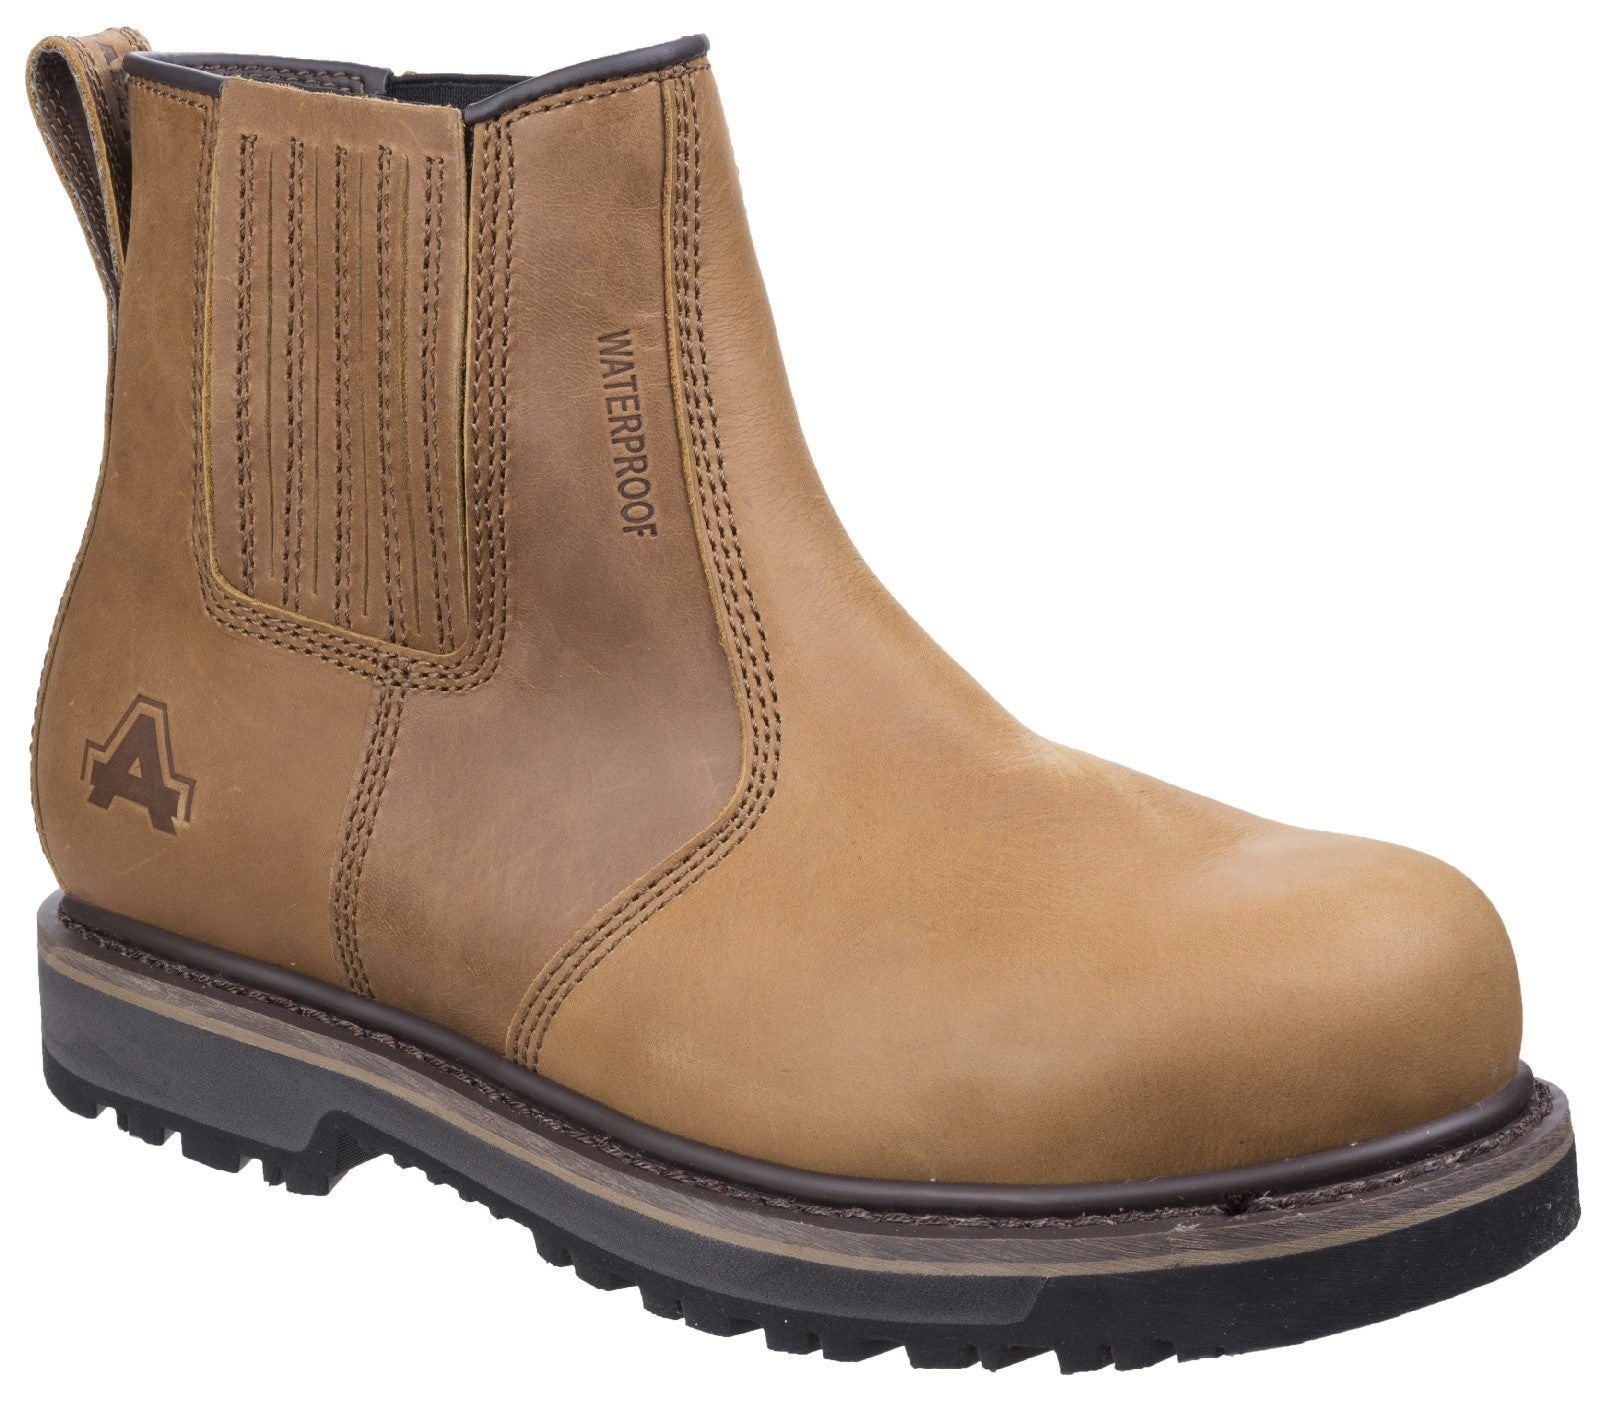 AS232 Safety Boot